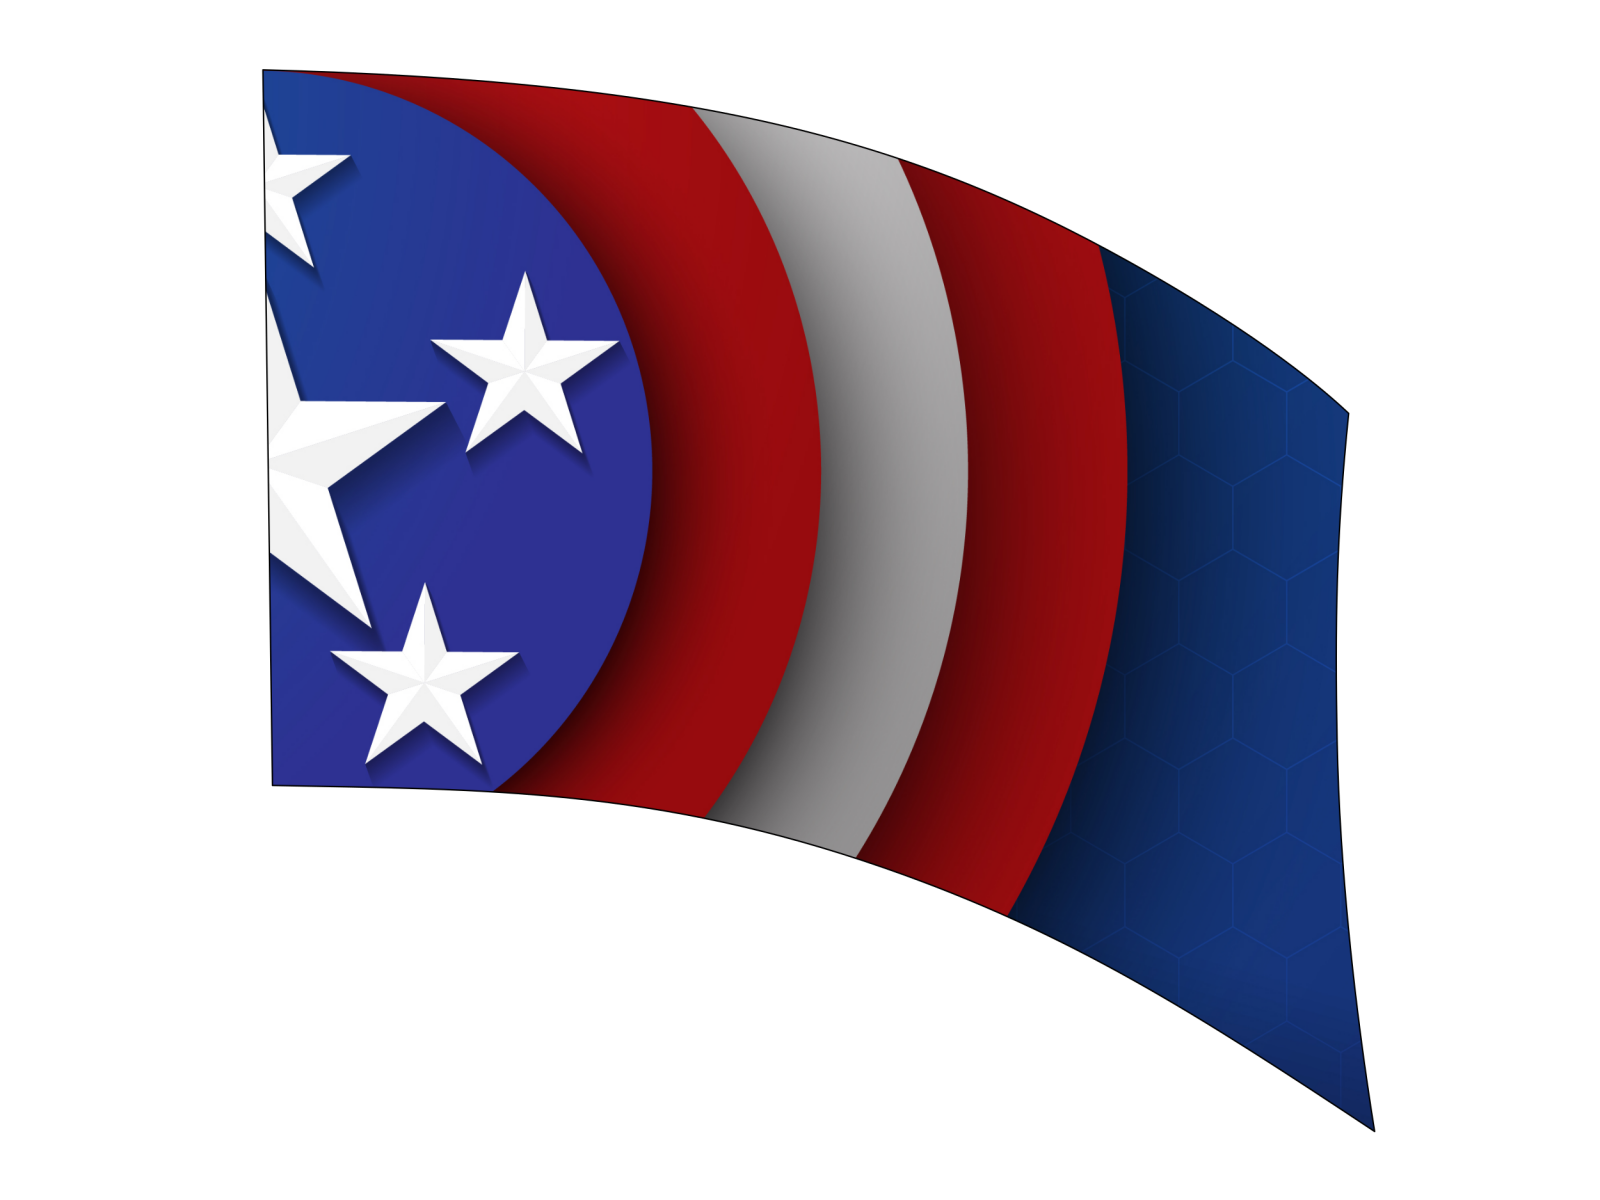 060203s - 36x52 Standard Cpt USA Shield